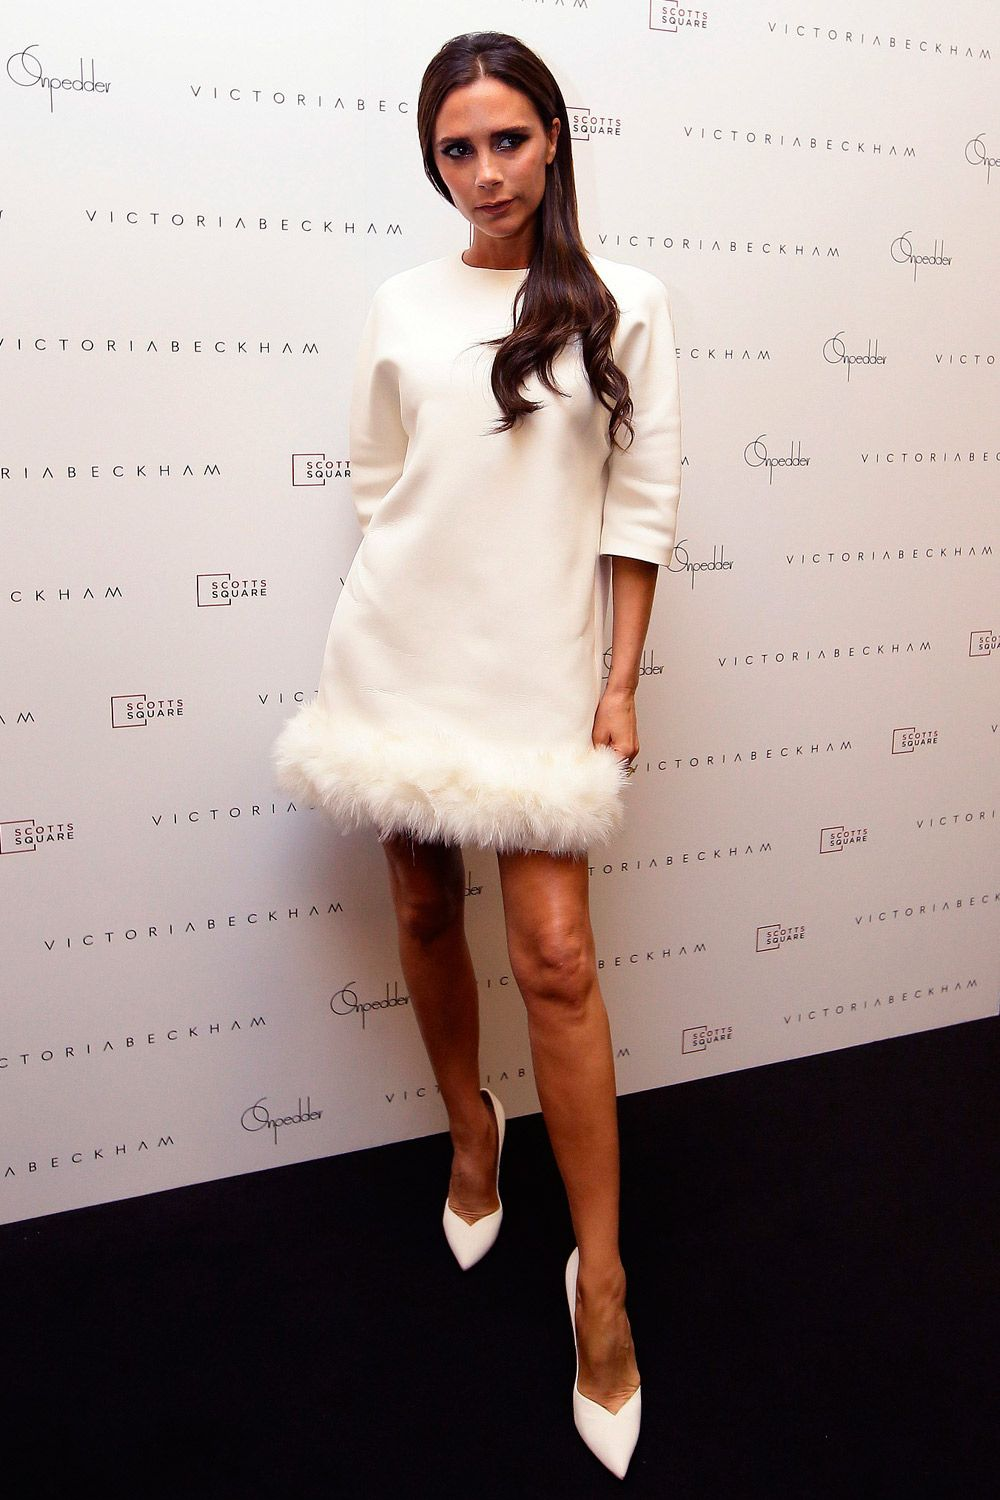 Ever since we spotted VB rocking a white dress complete with an adorable  faux-fur